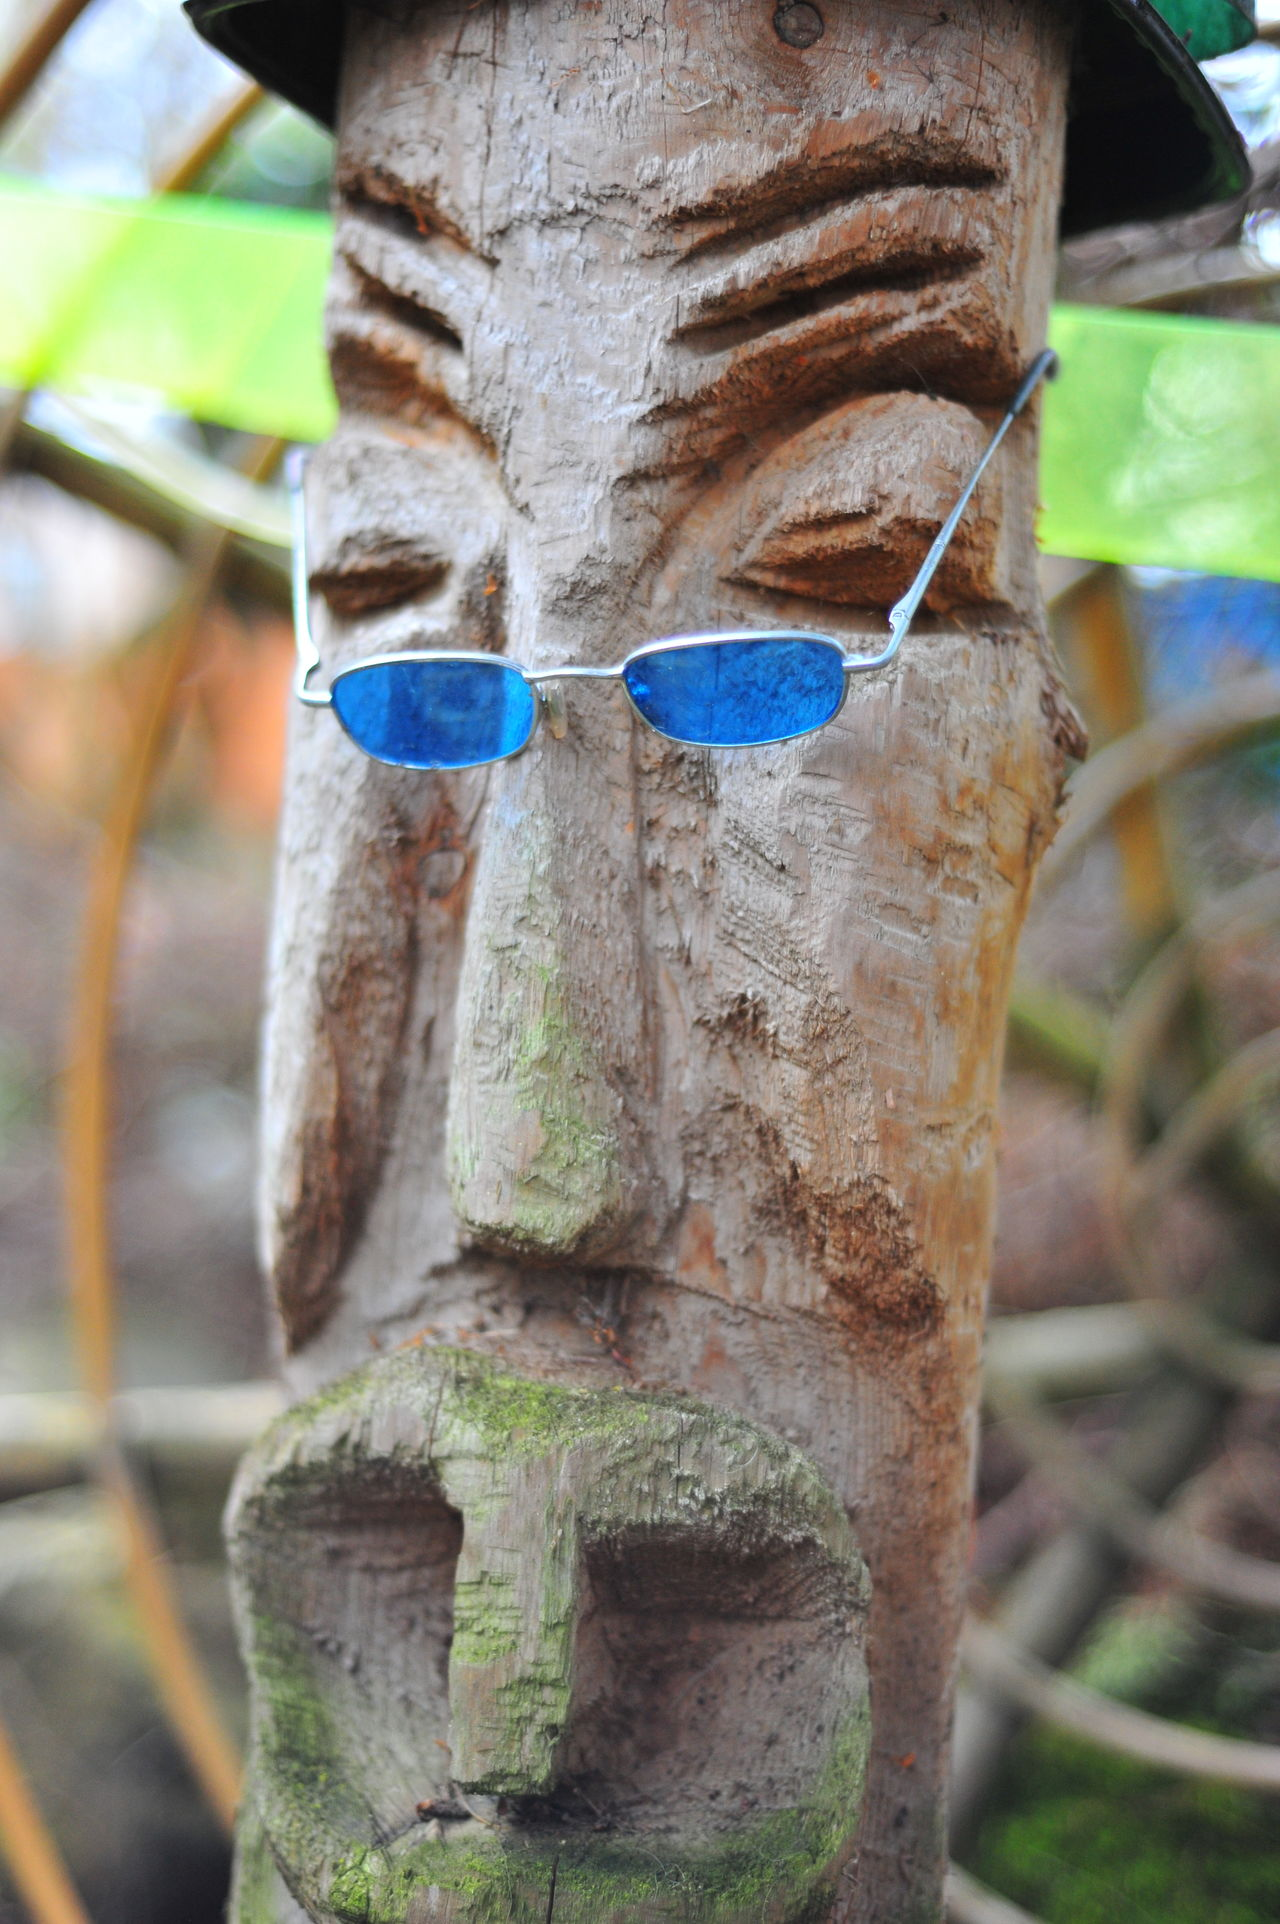 Close-up Day Faces Focus On Foreground Nature No People Outdoors Textured  Tiki God Tree Tree Trunk Art Is Everywhere